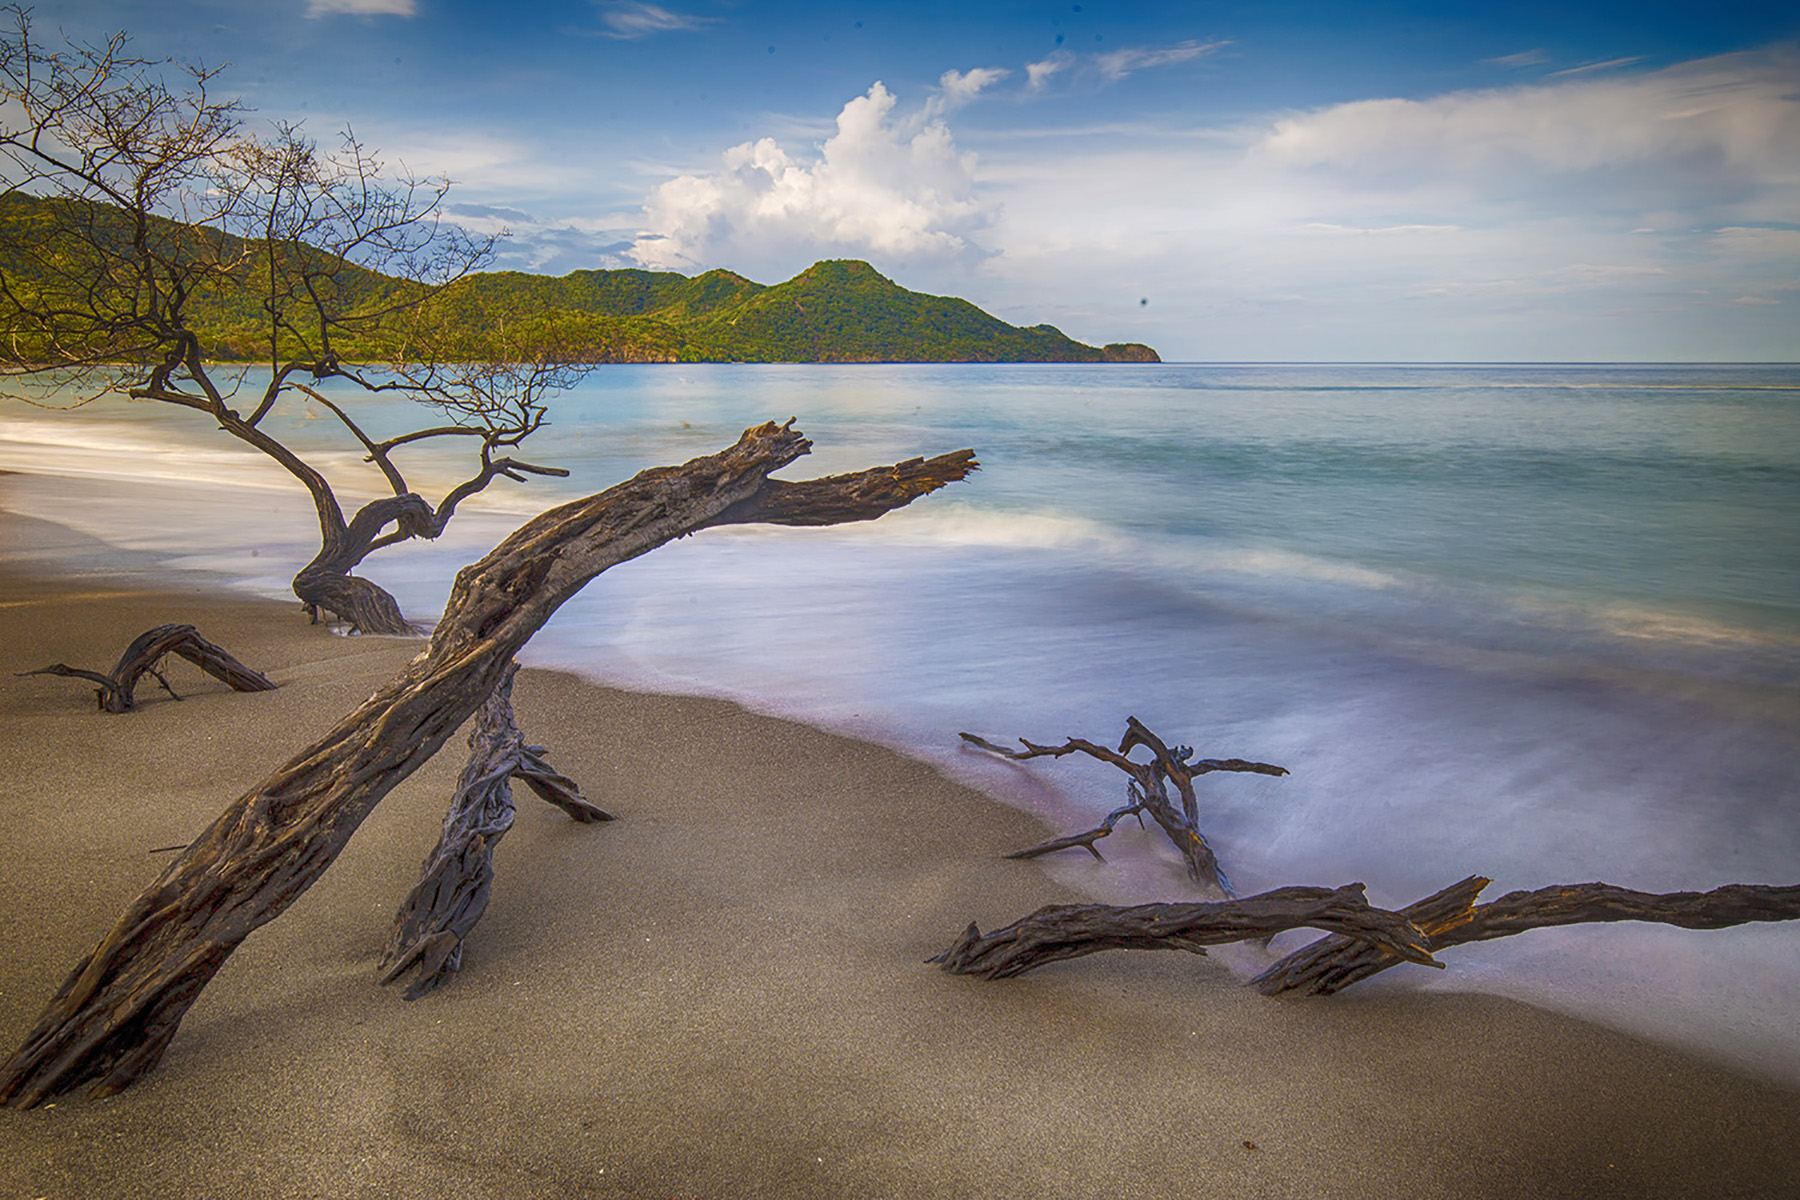 Travels to Costa Rica: A Photo Adventure